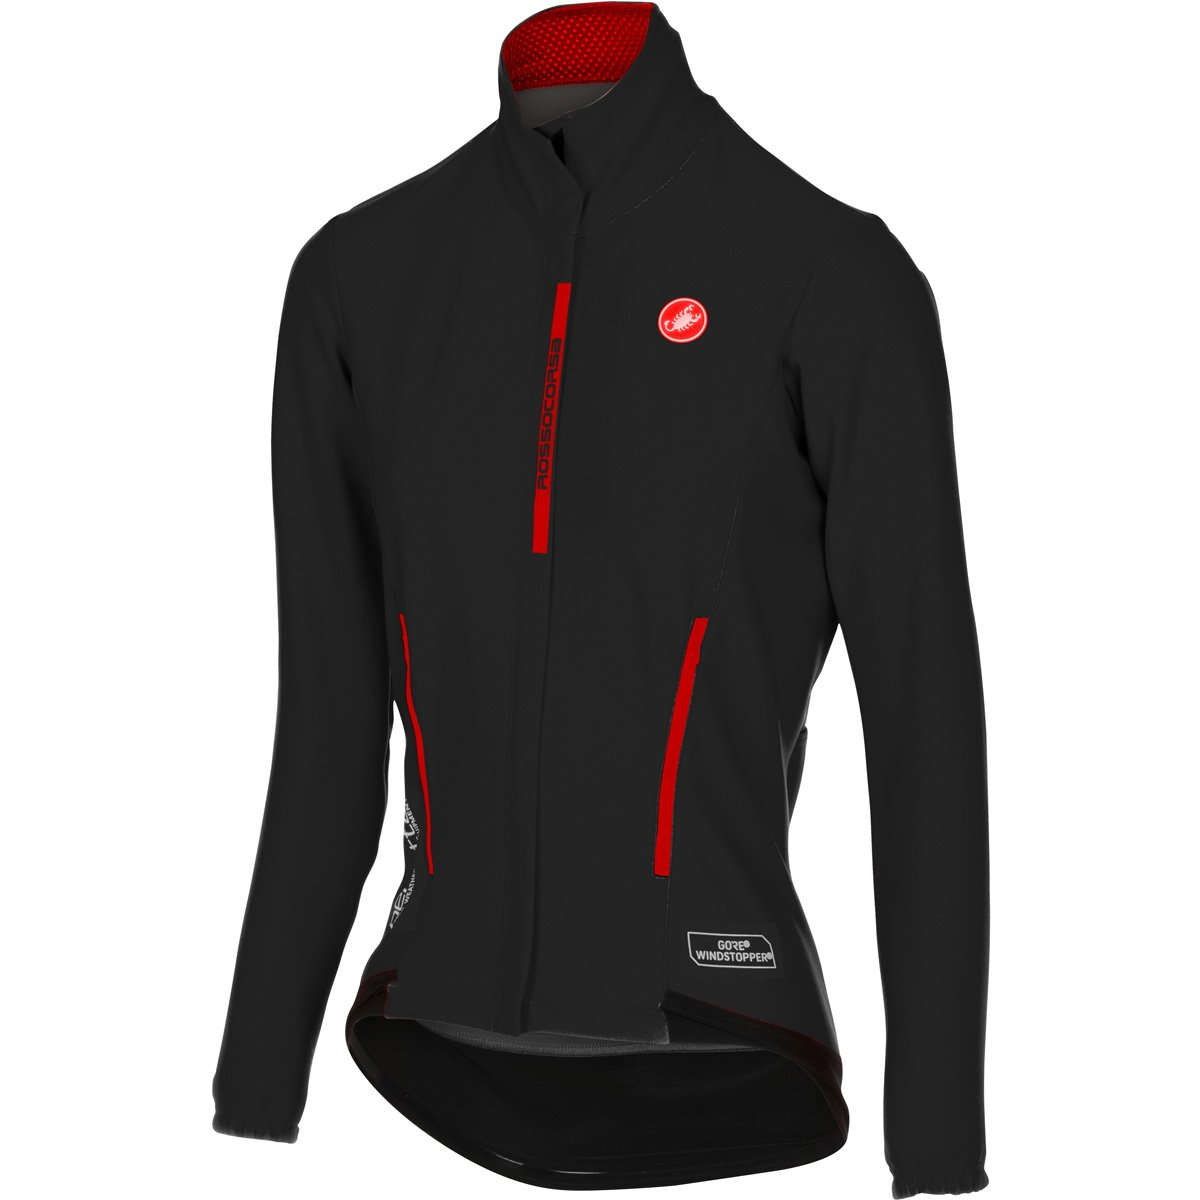 Castelli Perfetto Jersey – Women 's B01LXJCRGN Medium|ブラック ブラック Medium